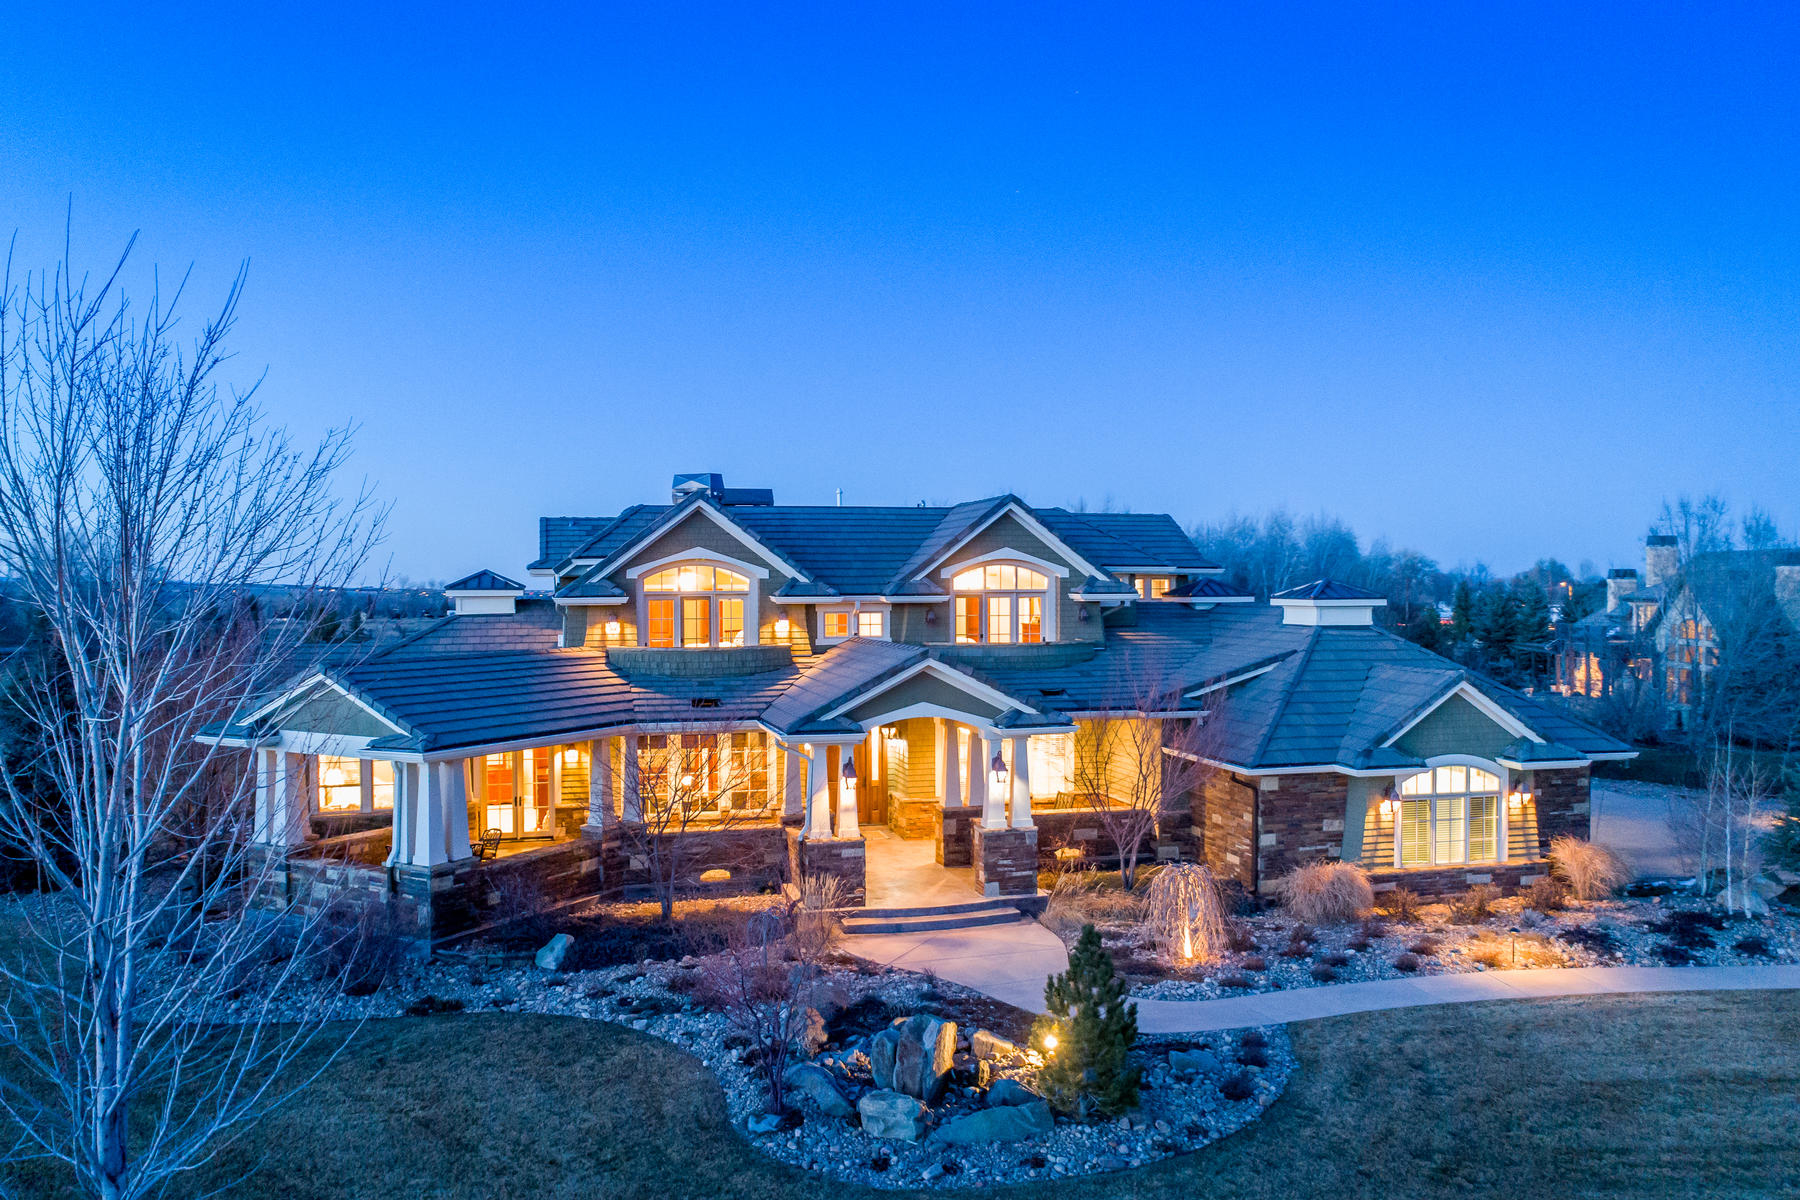 Single Family Home for Active at Incredible Views In White Hawk Ranch 1459 White Hawk Ranch Dr. Boulder, Colorado 80303 United States